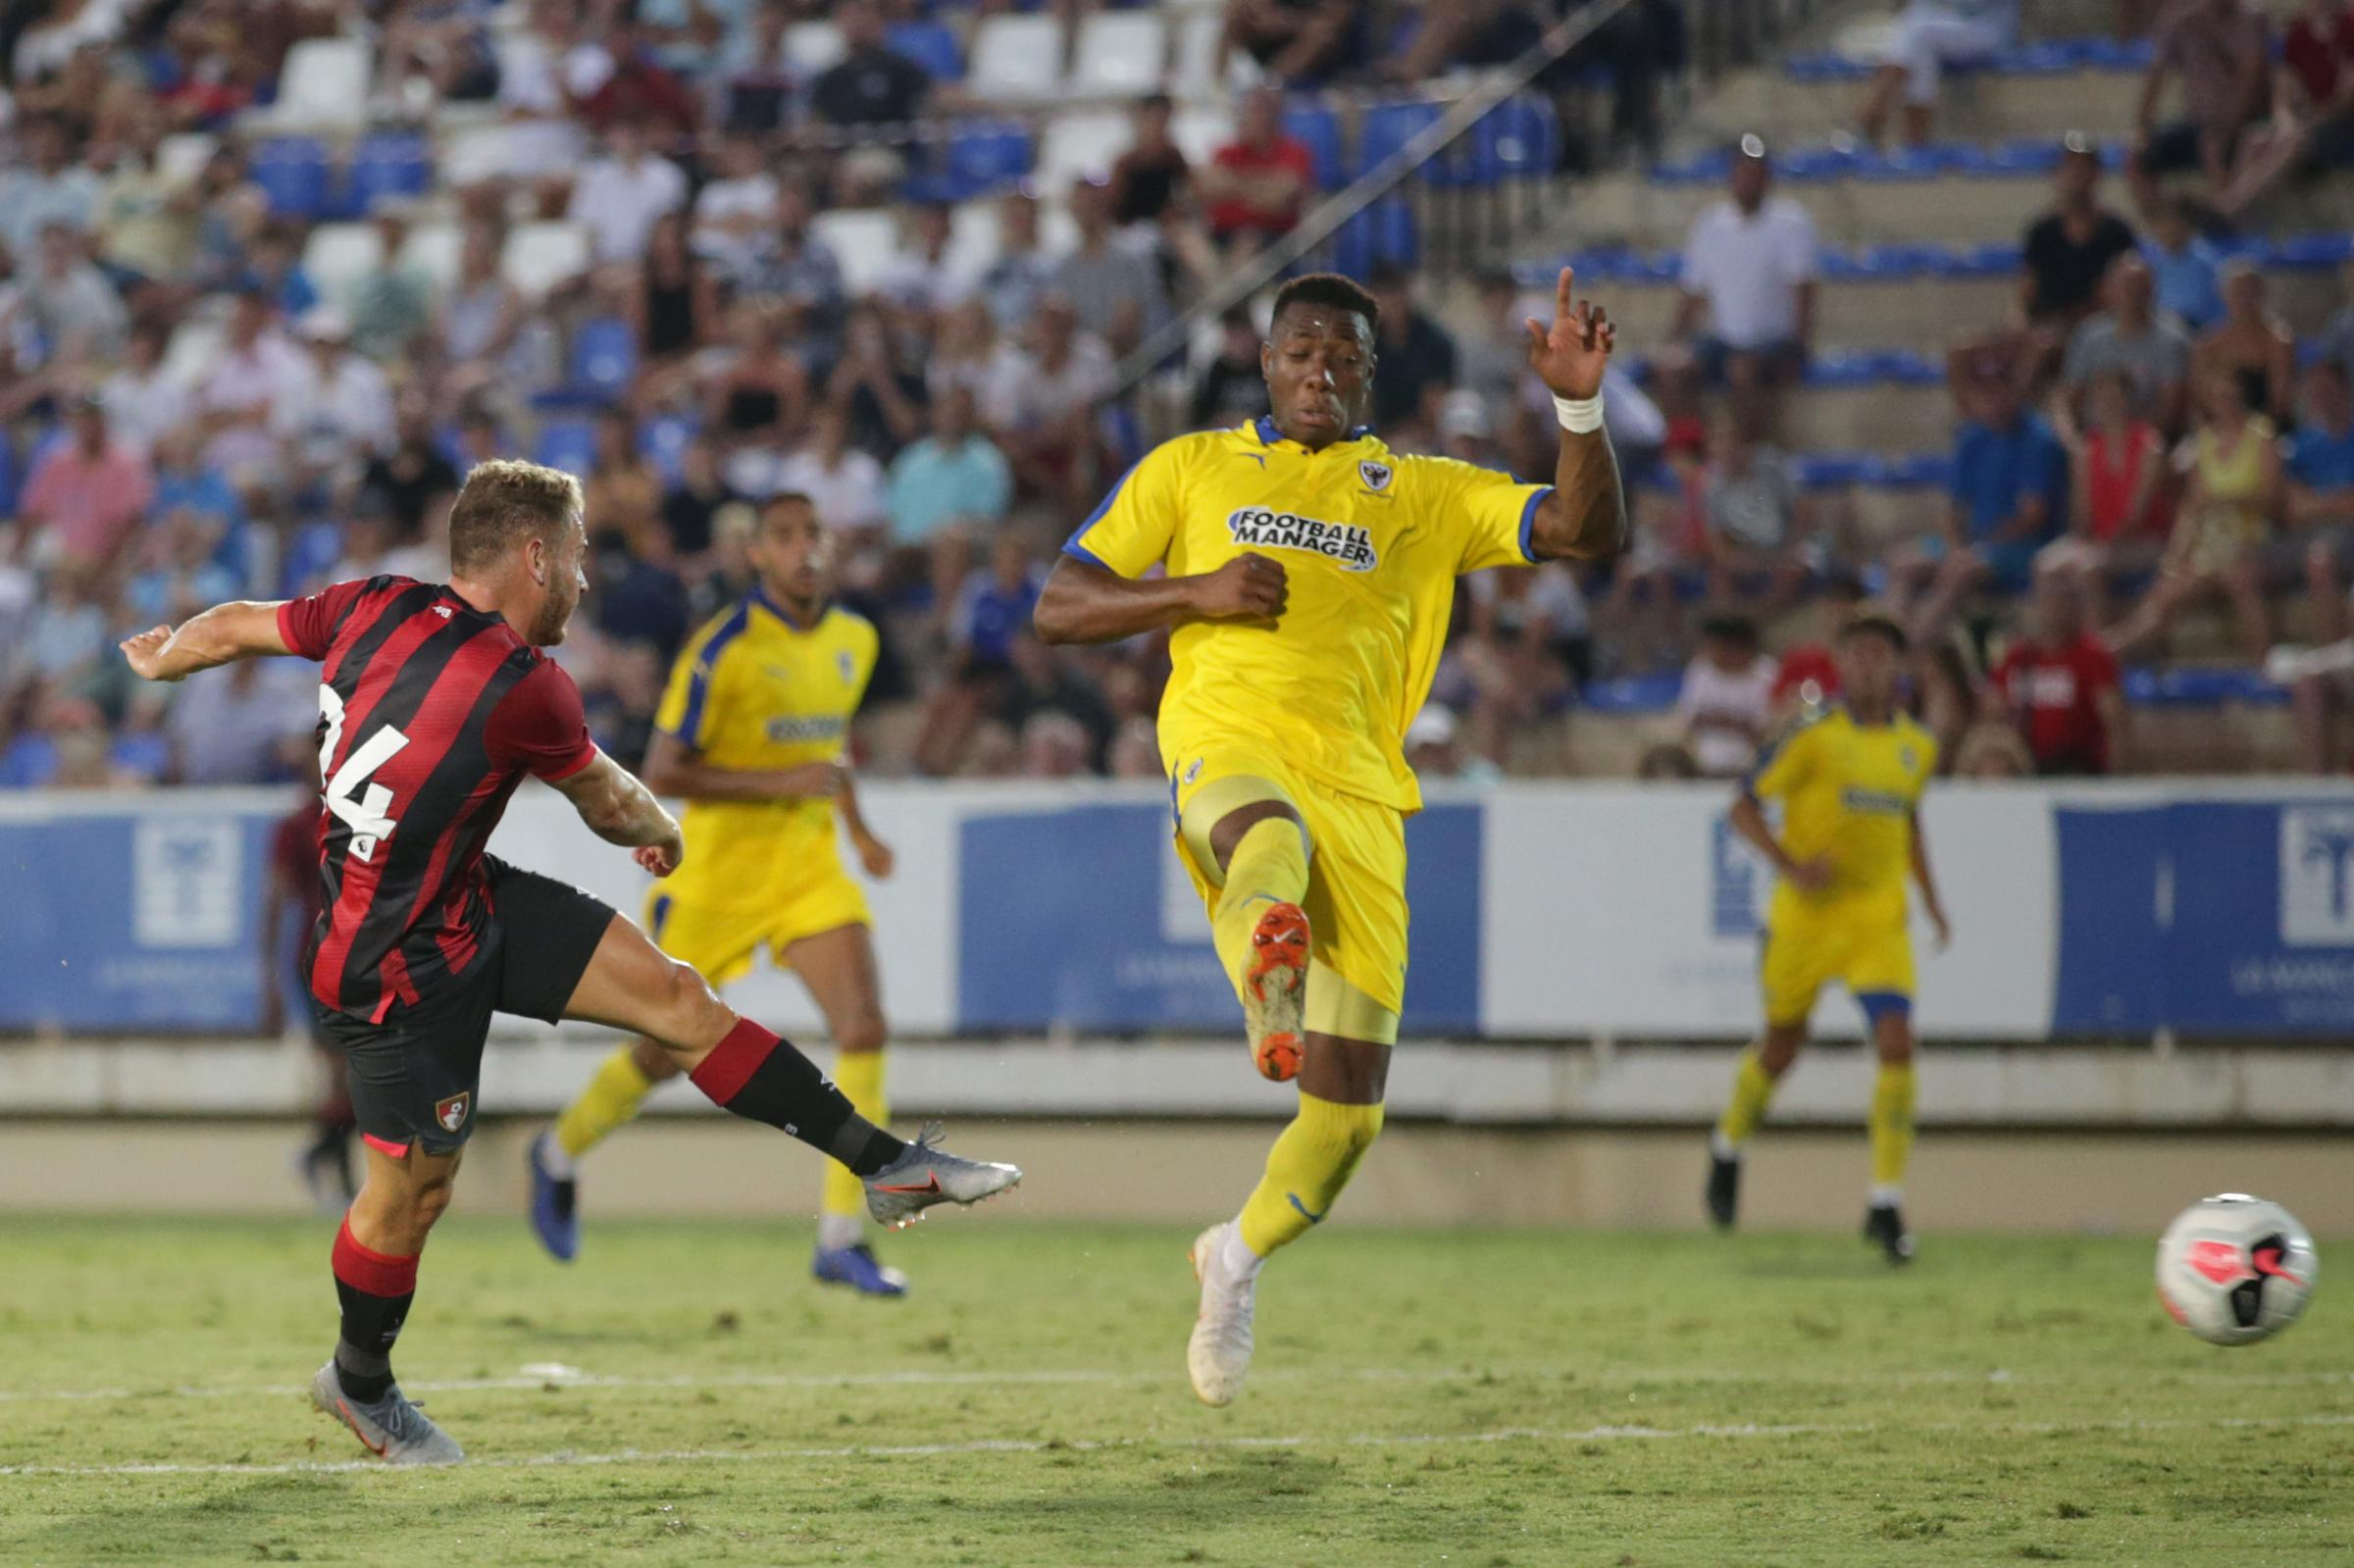 Ryan Fraser and Callum Wilson pick up where they left off to earn AFC Bournemouth a narrow win over AFC Wimbledon